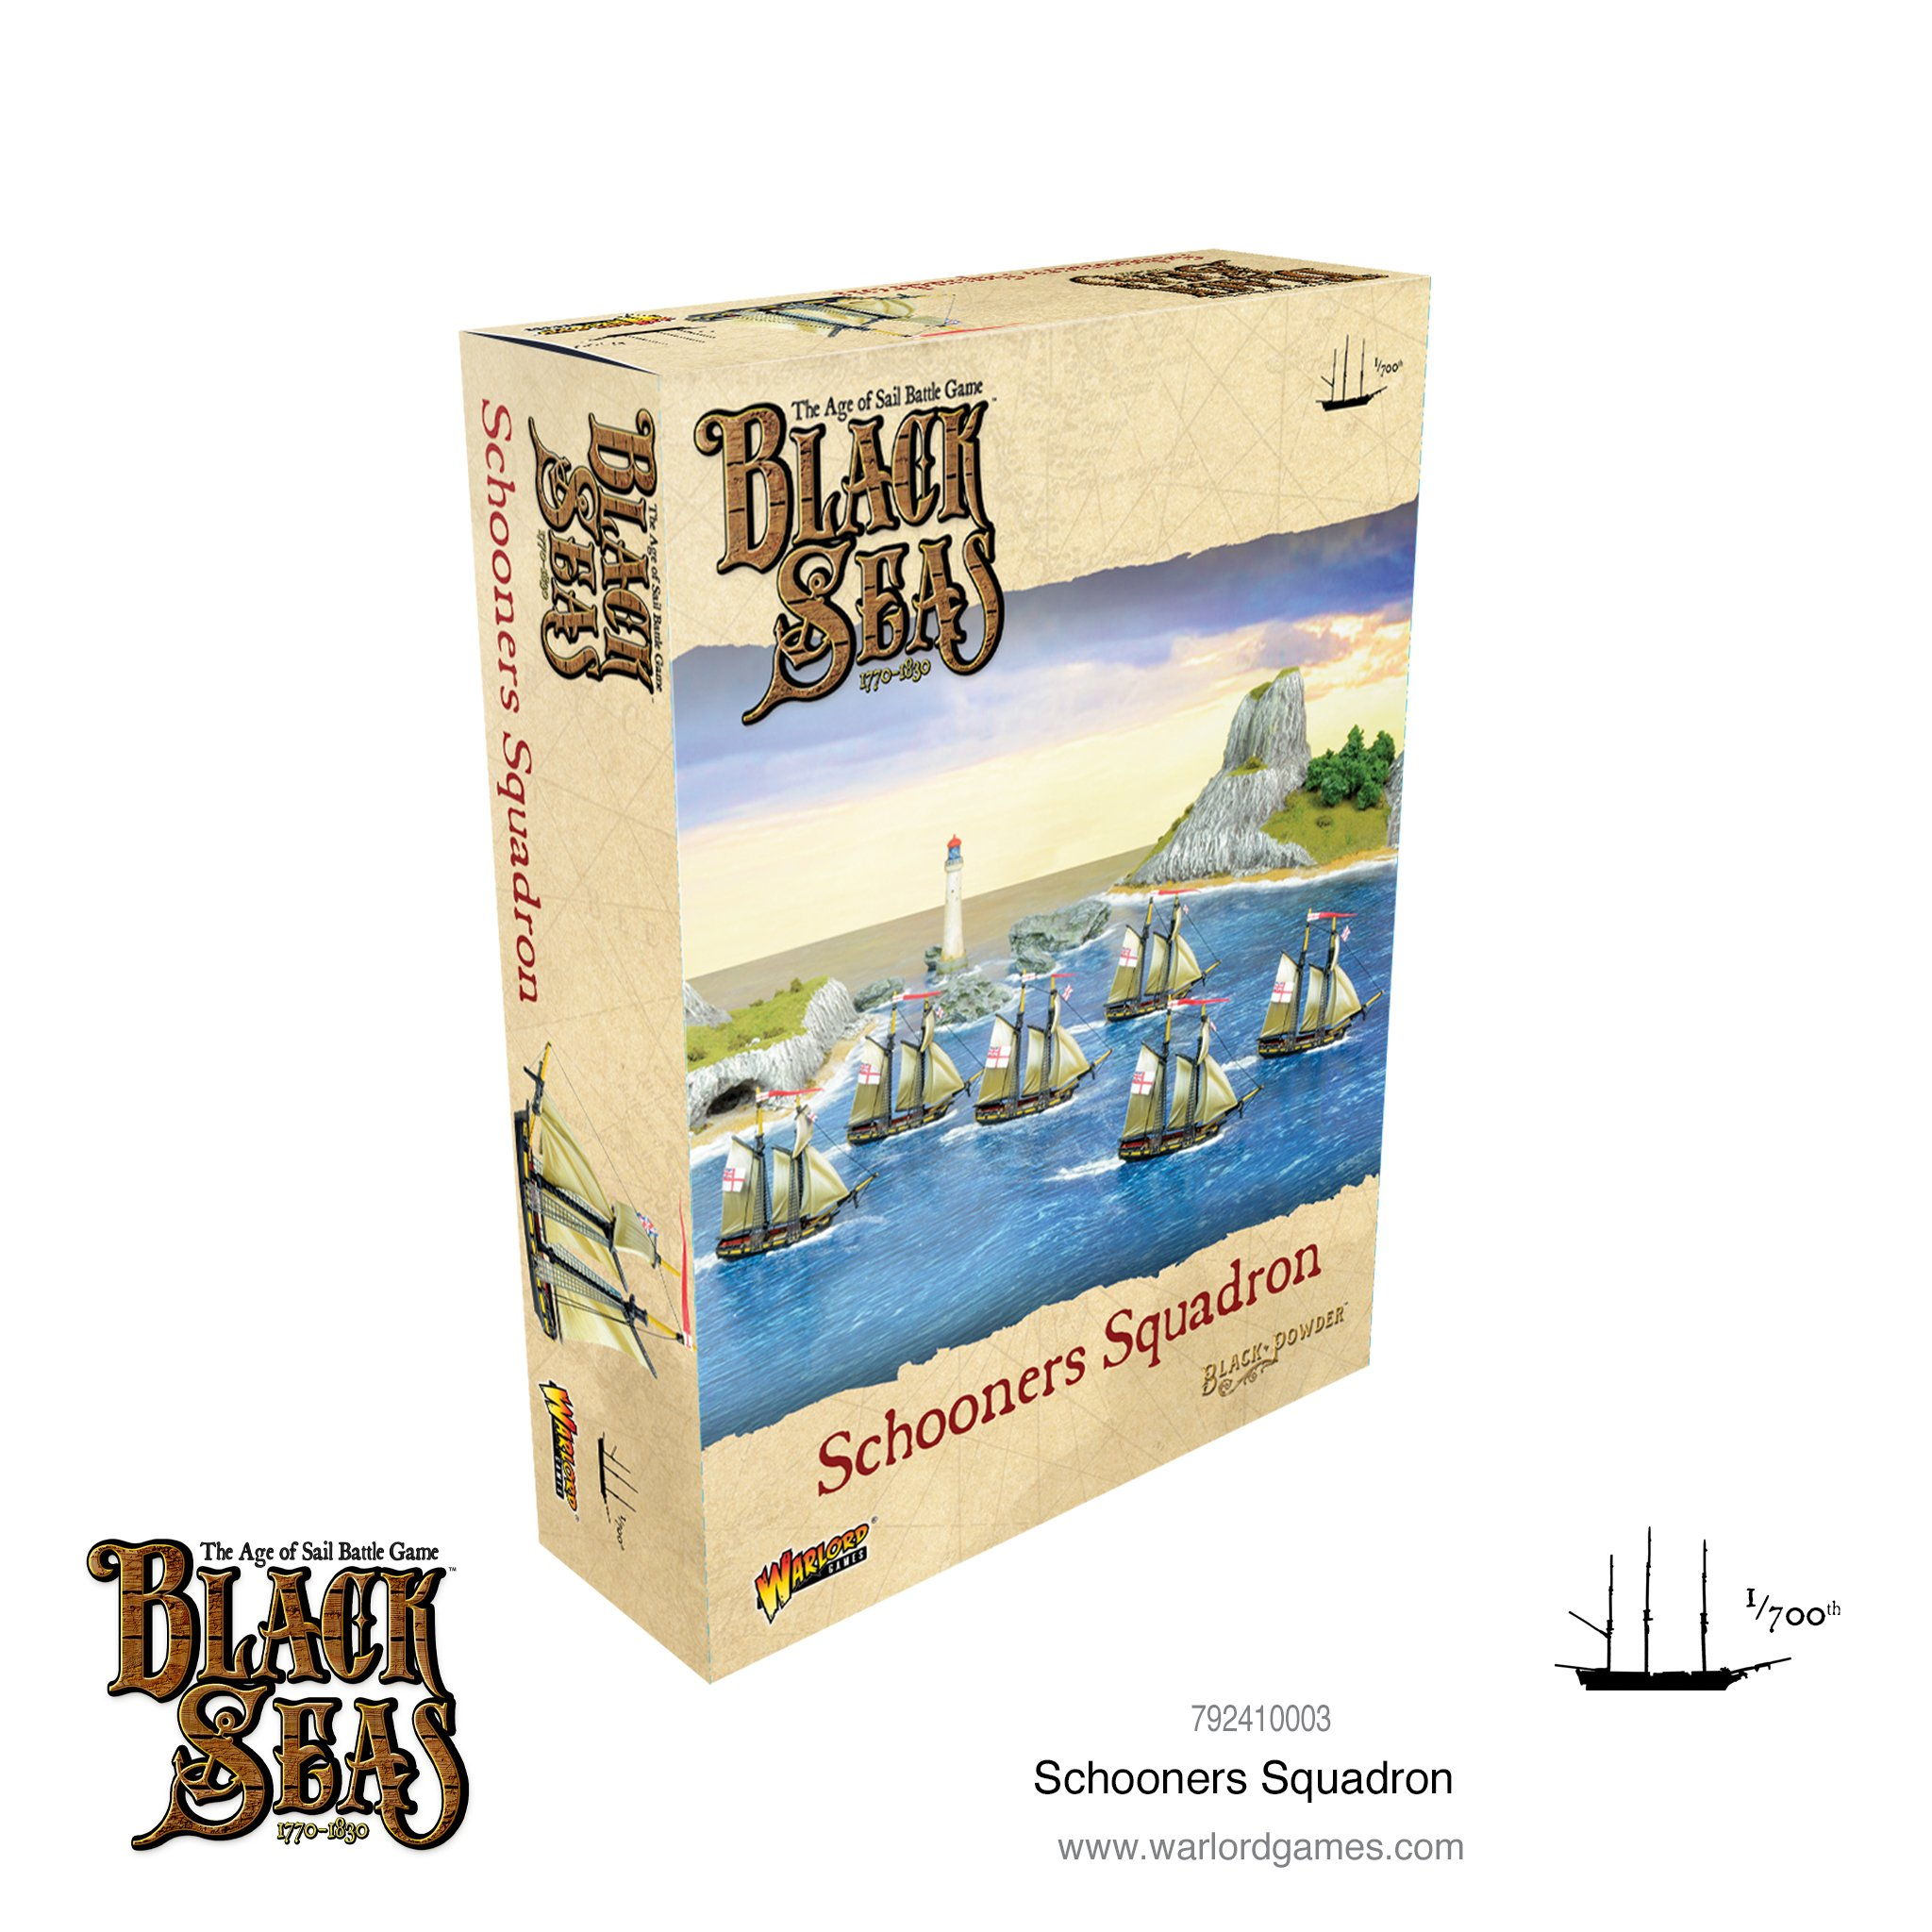 Black Powder Black Seas: Schooners squadron